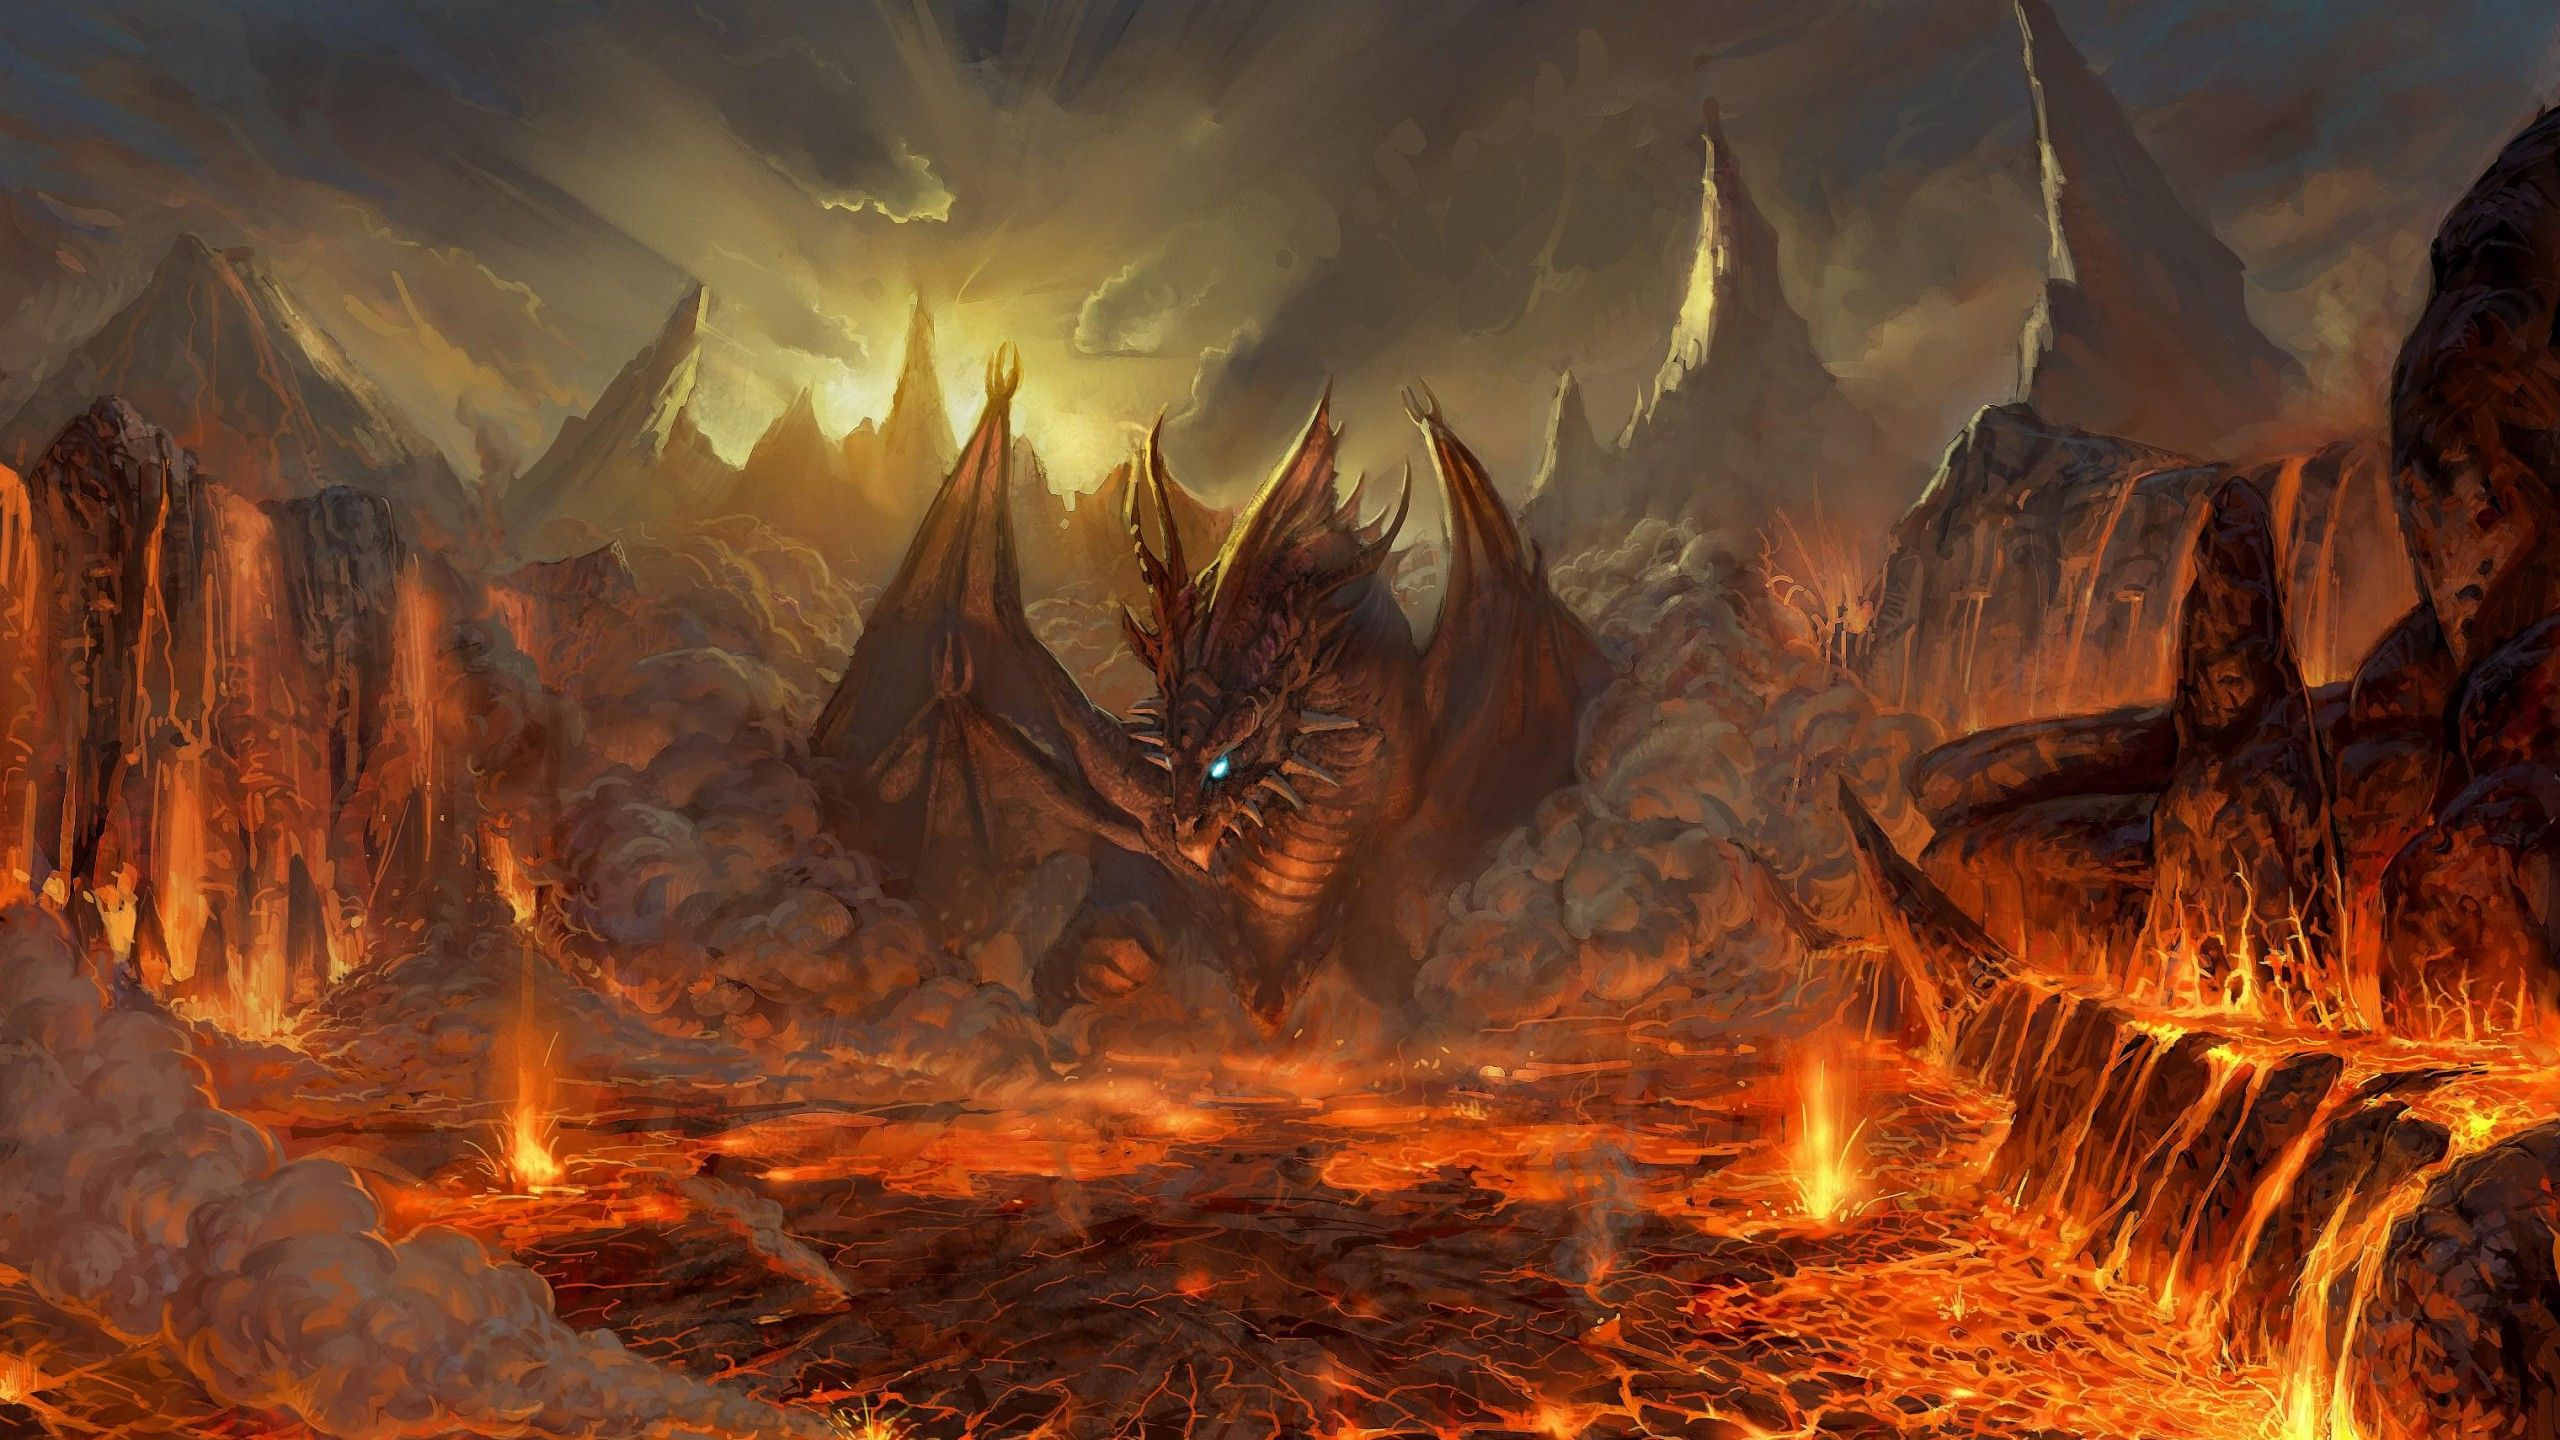 Fire Dragon Wallpapers Desktop Background with High ...